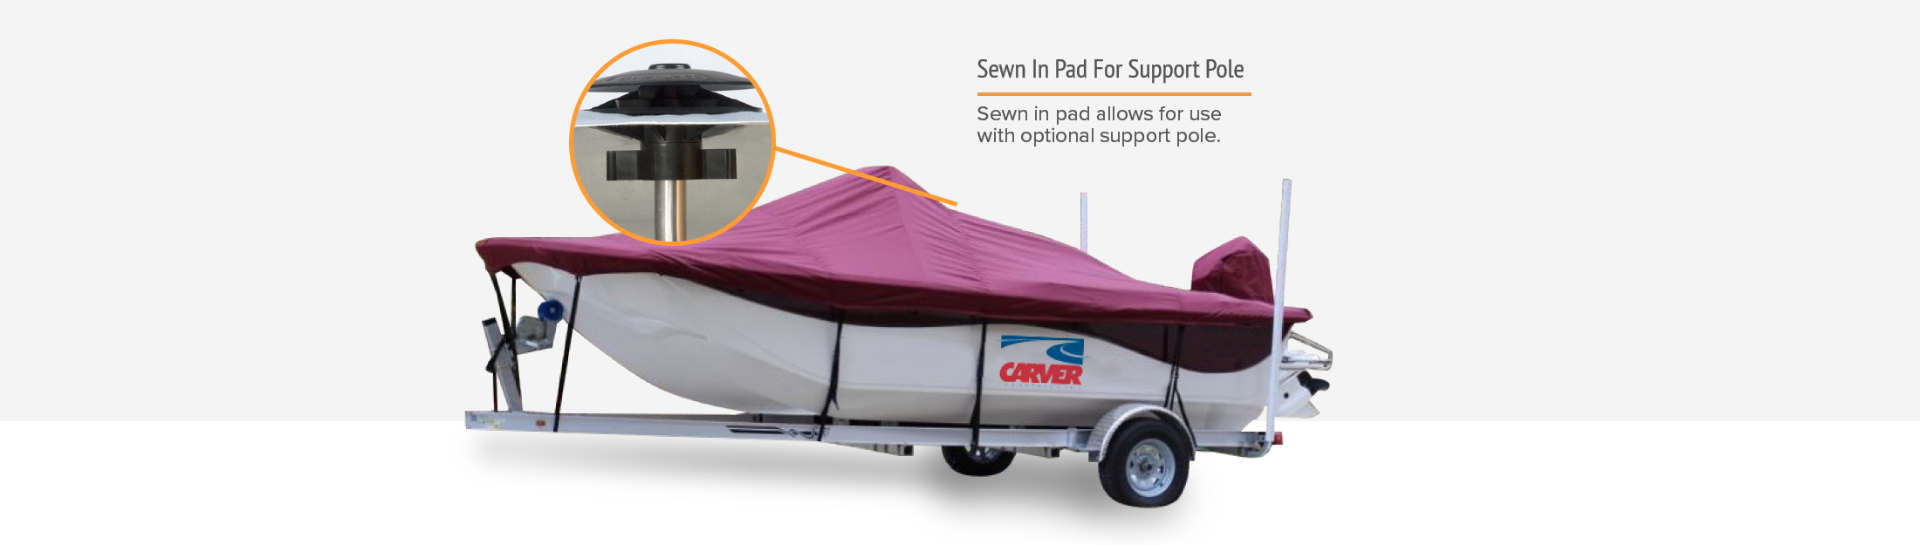 Carver boat cover support pole pad